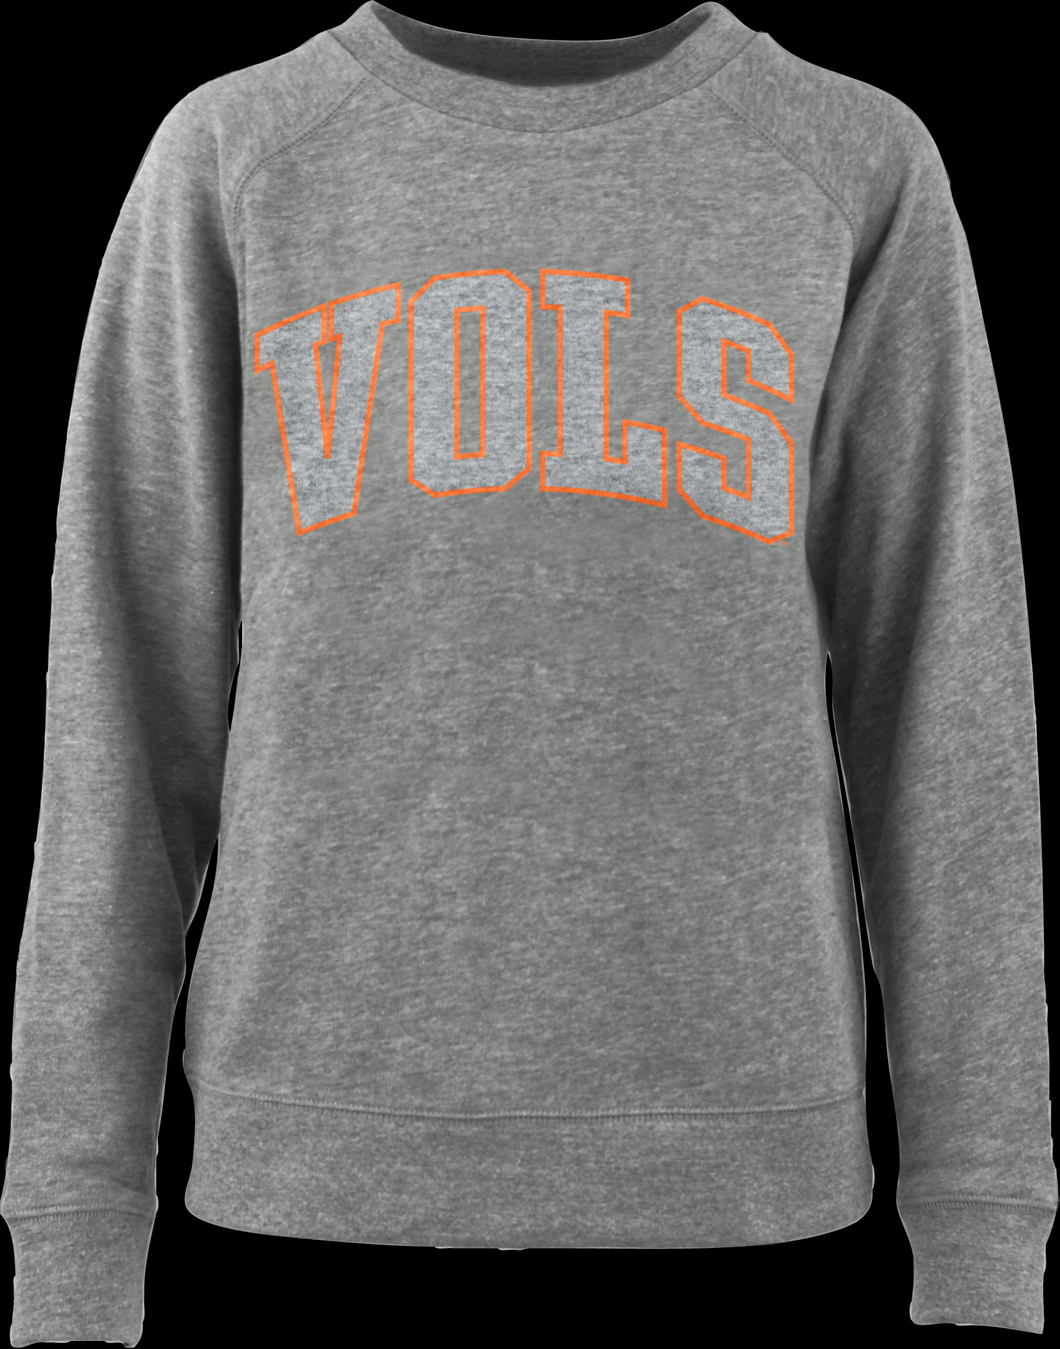 TN Cecilia Vols Sweatshirt - Grey